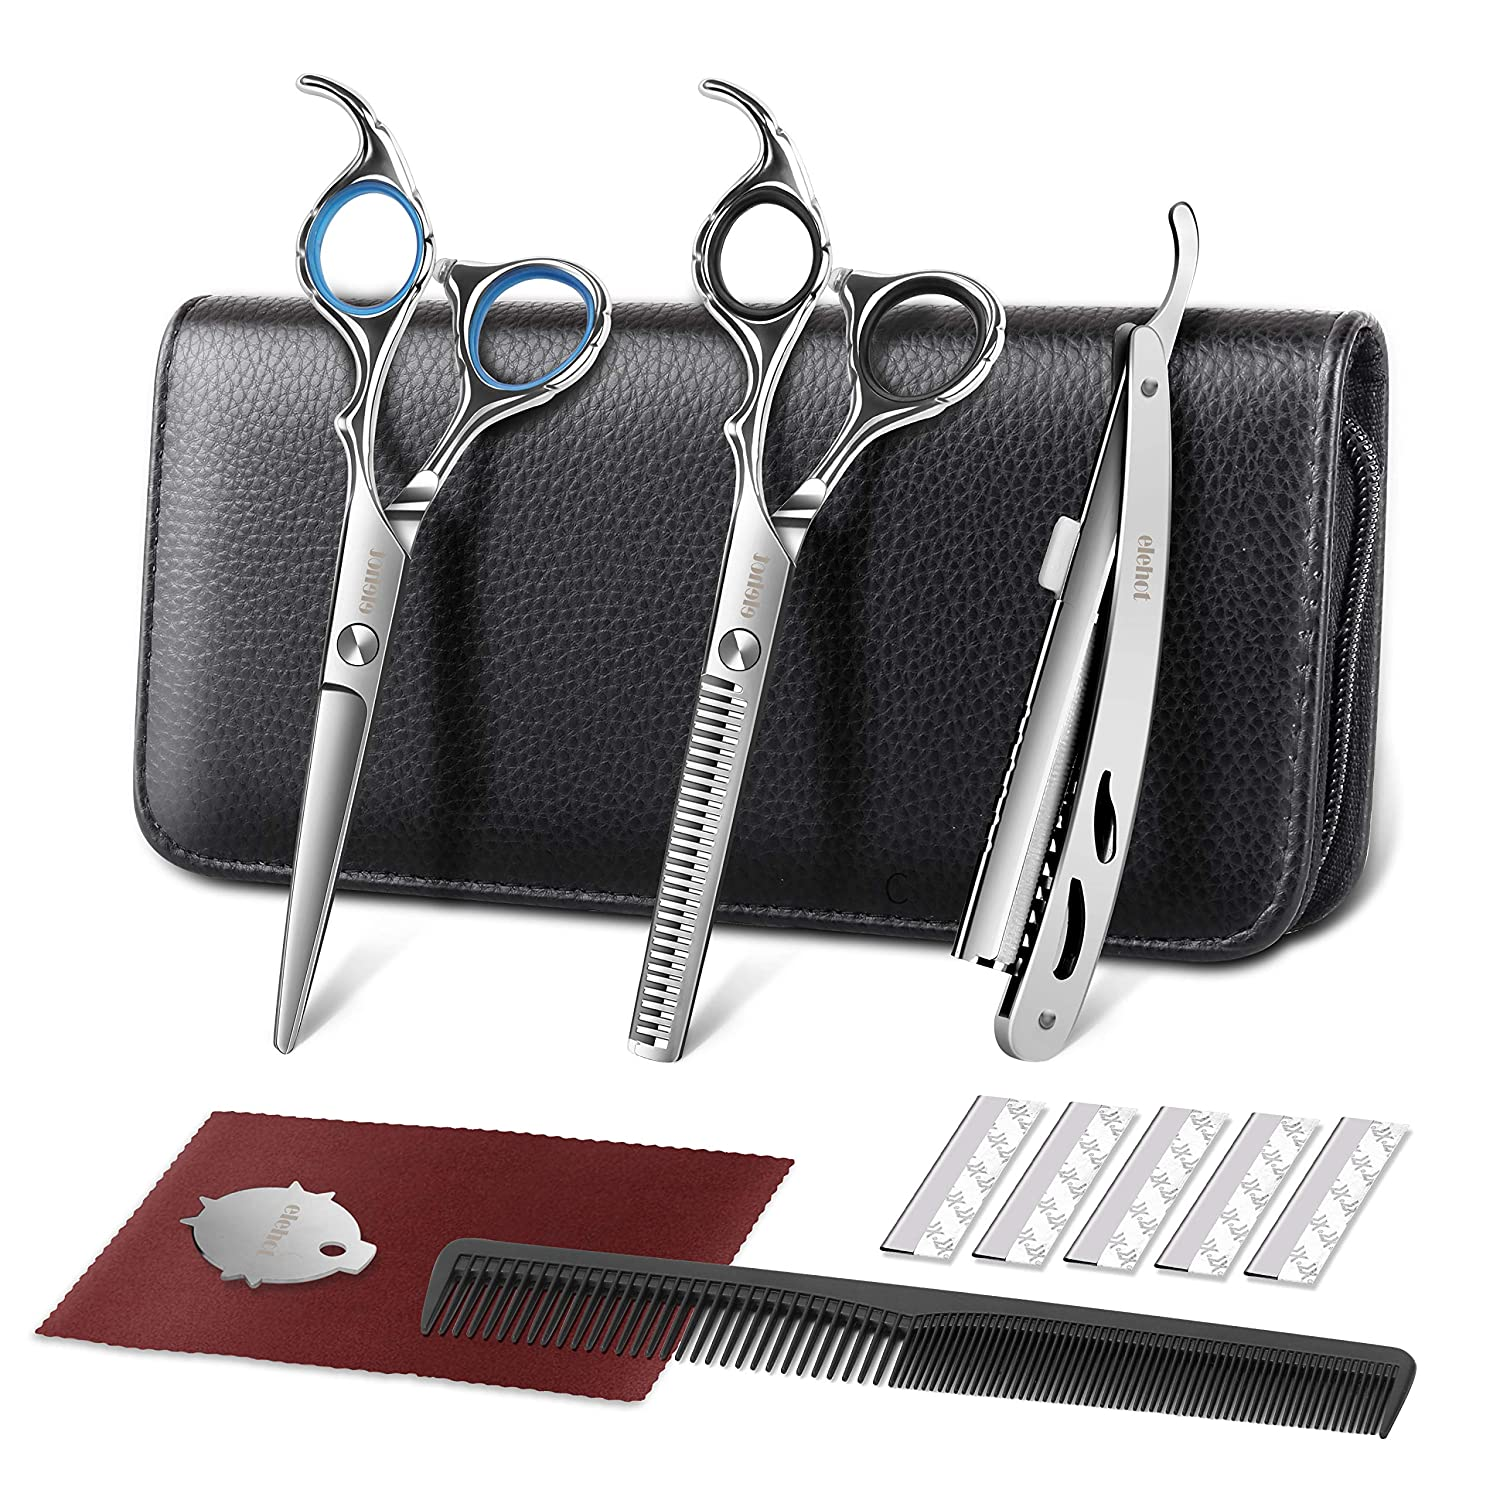 ELEHOT Hair Scissors Professional Barber Cutting Scissors Kit